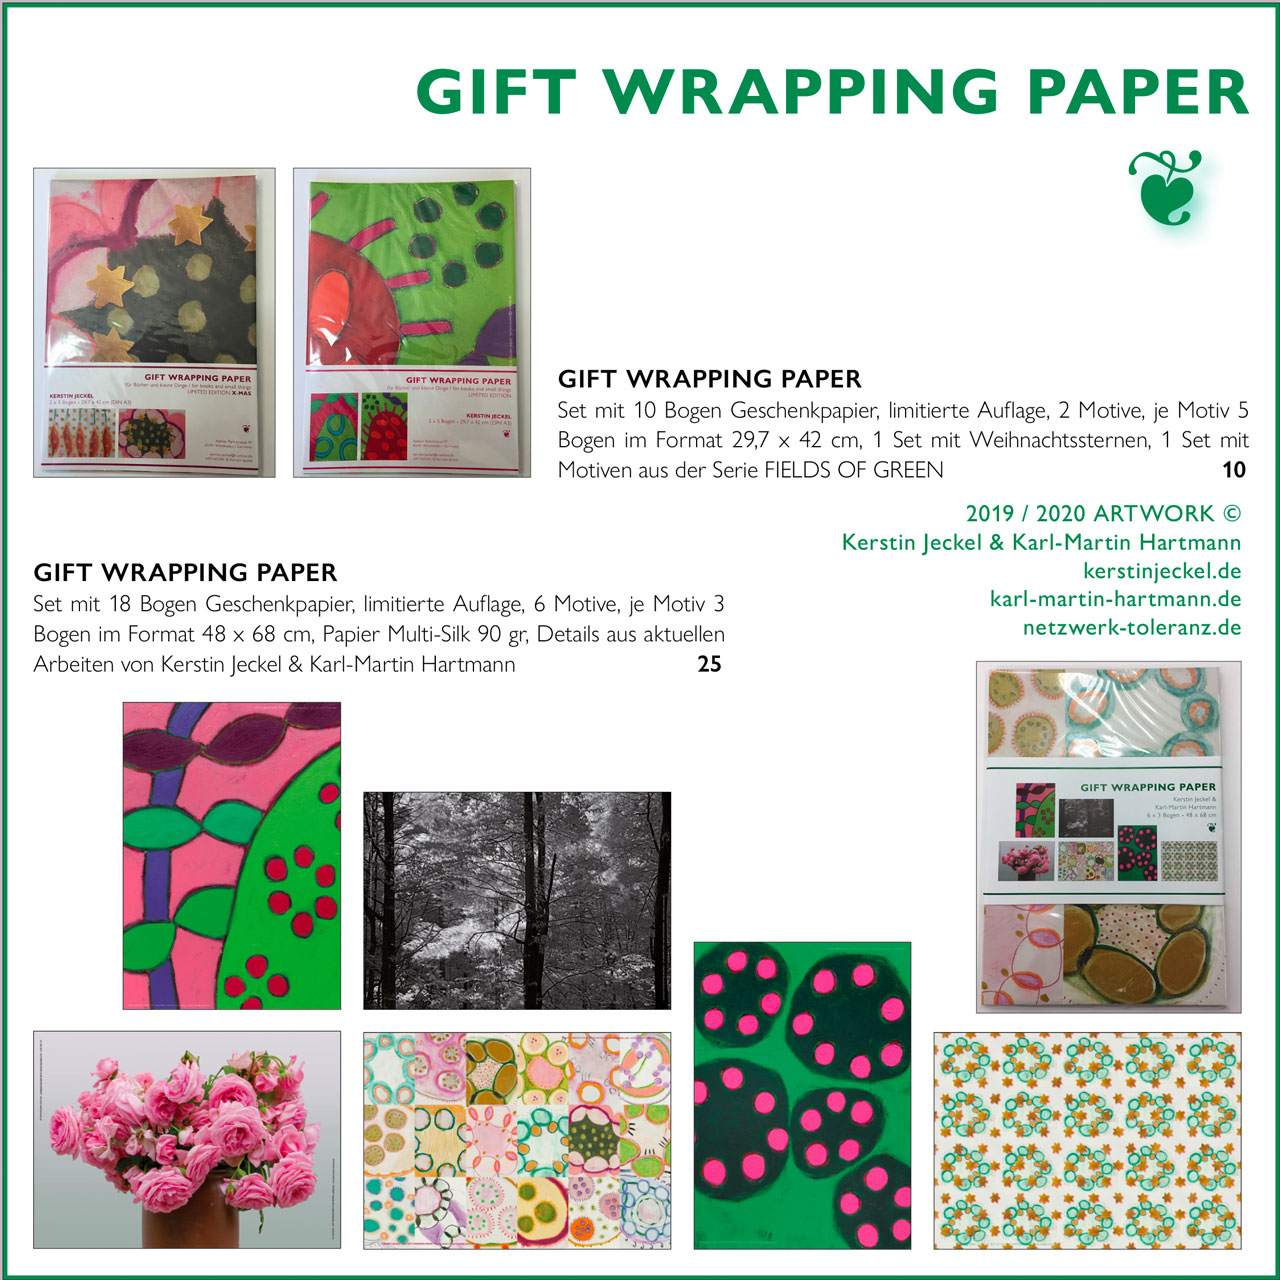 GIFT WRAPPING PAPER | 2019 © Kerstin Jeckel